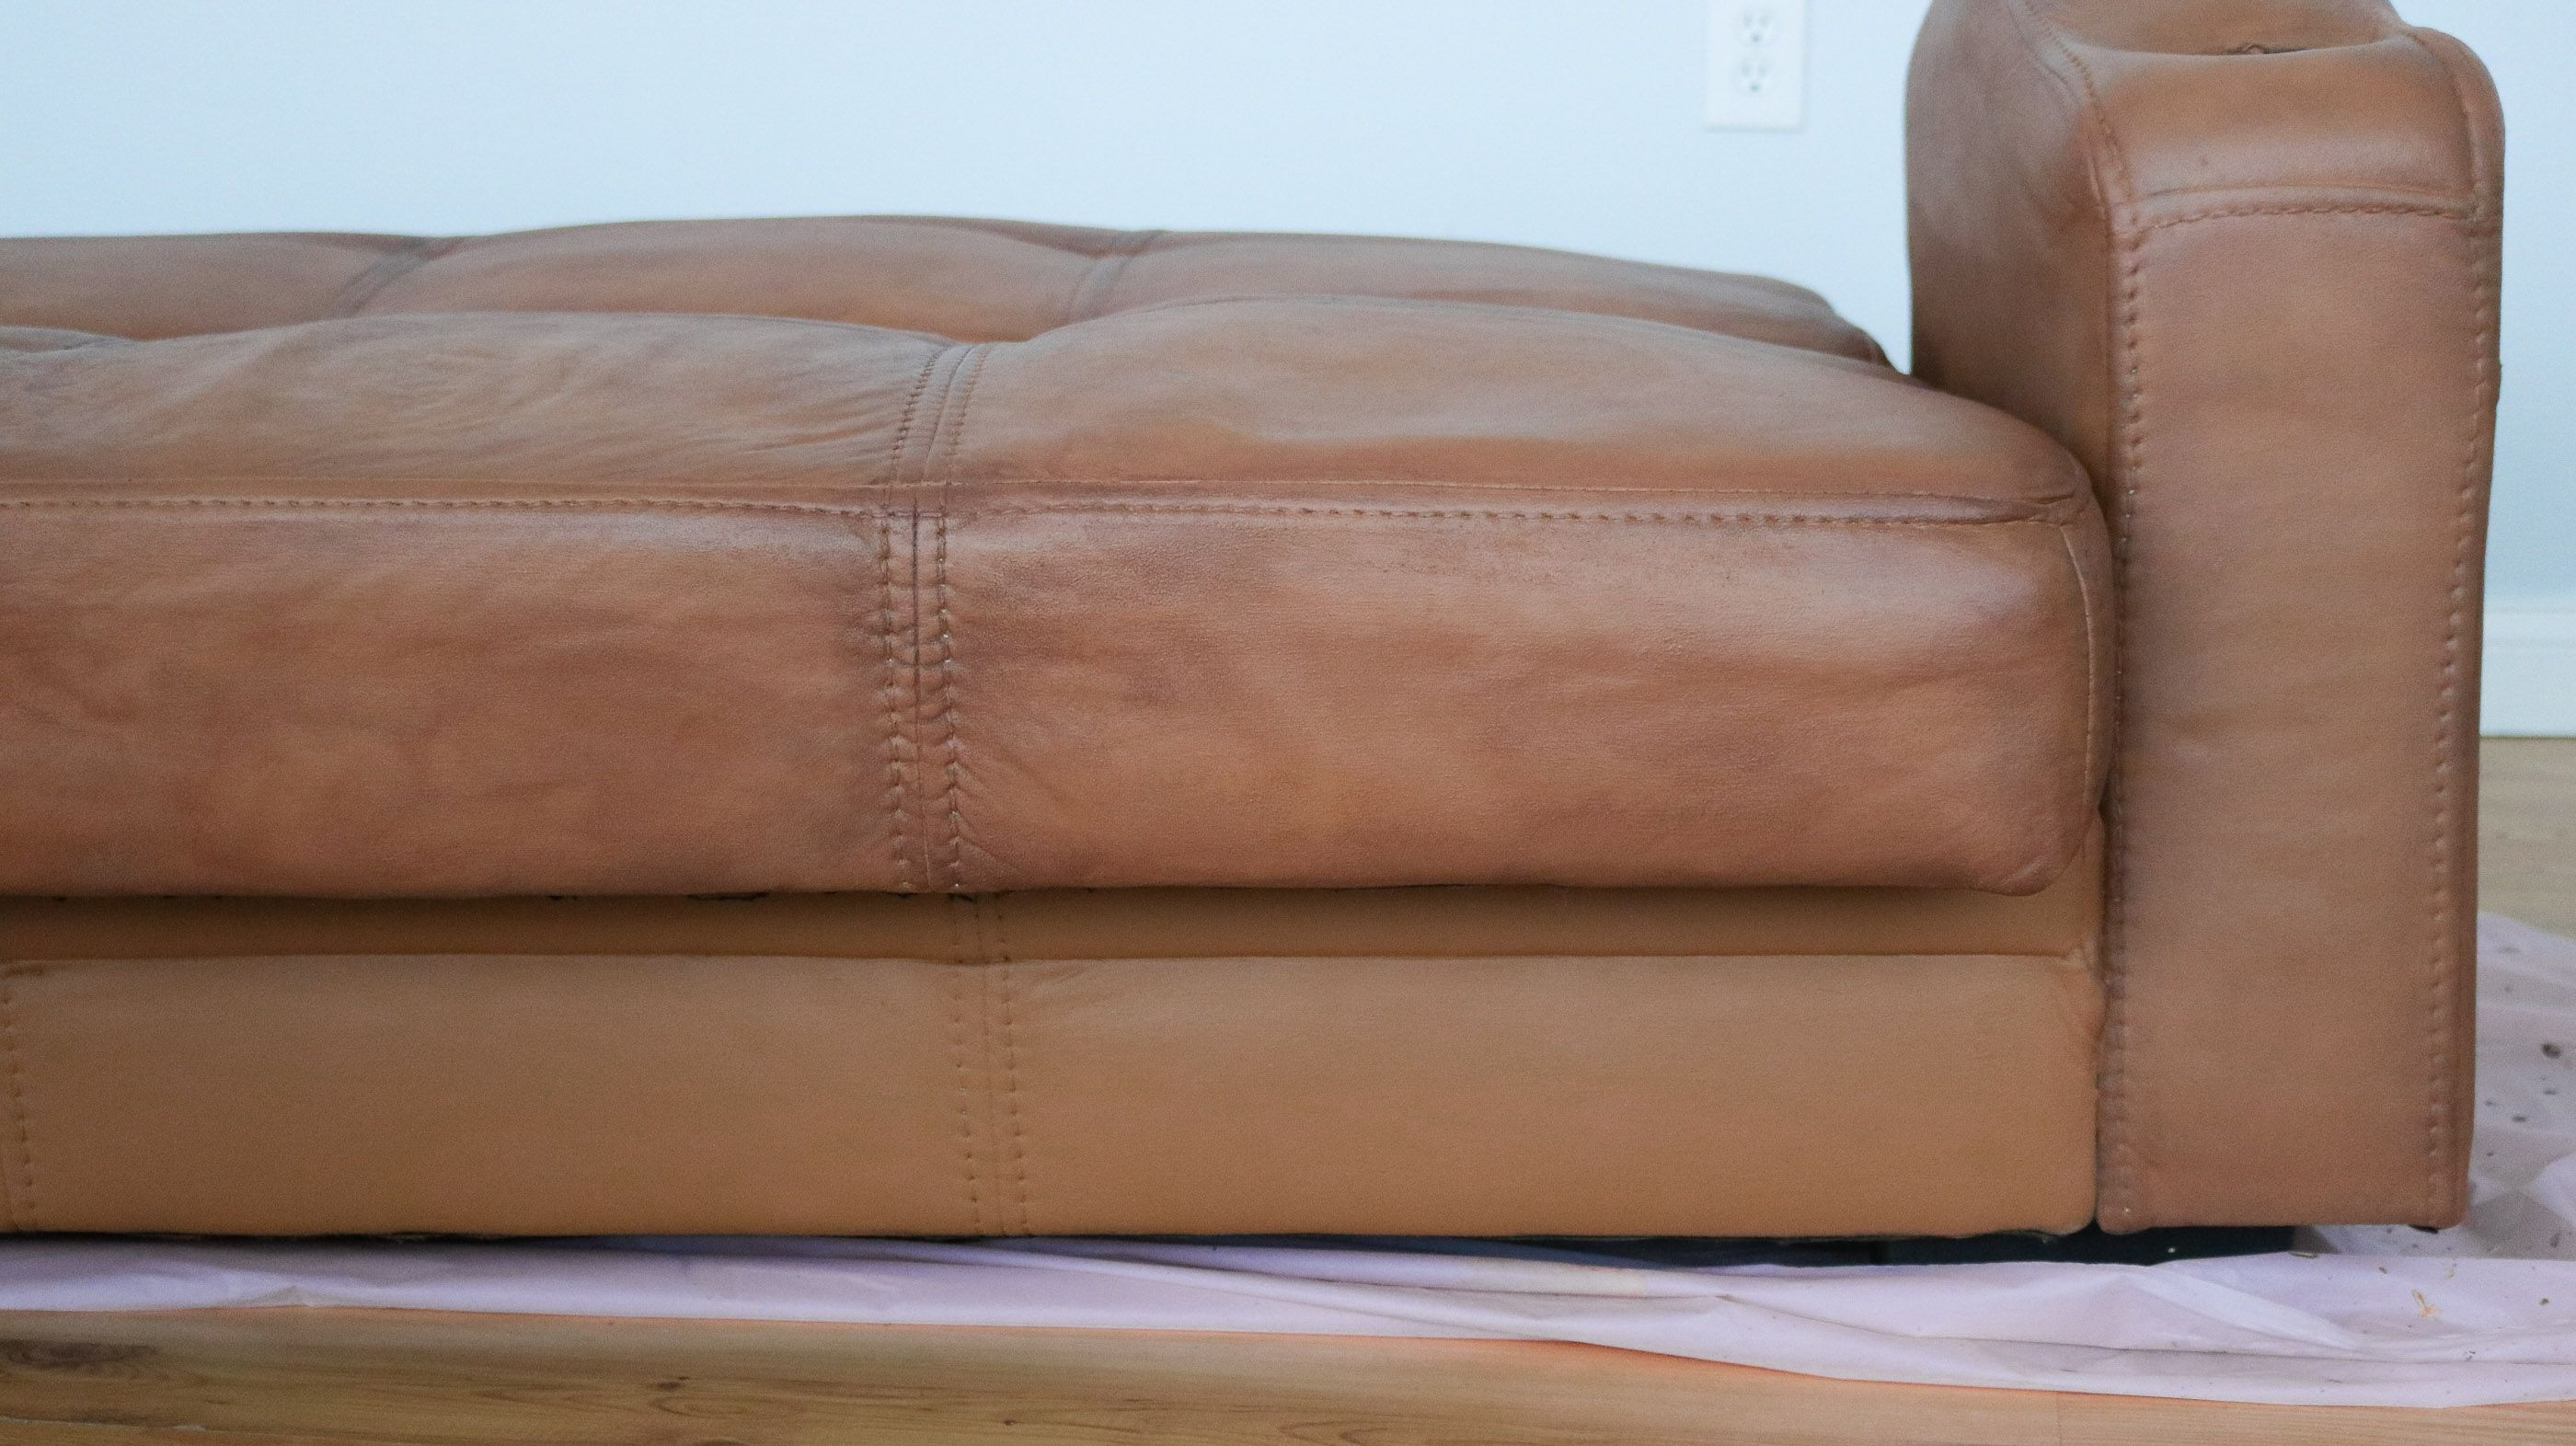 How To Paint Your Microfiber Couch To Look Like Real Leather Lily Ardor Fabric Paint Couch Fabric Painted Sofa Furniture Fabric